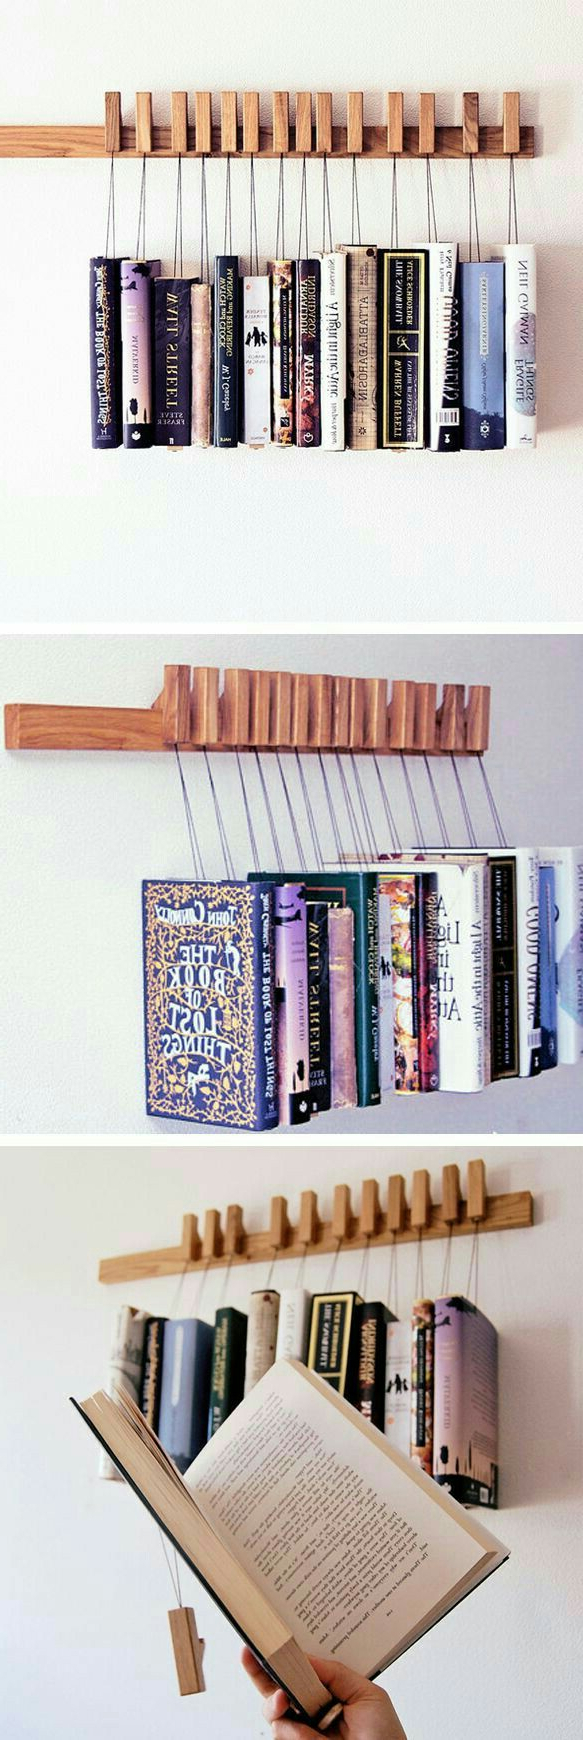 Book Racks Image Sumaiyya On Creativity Wooden Books